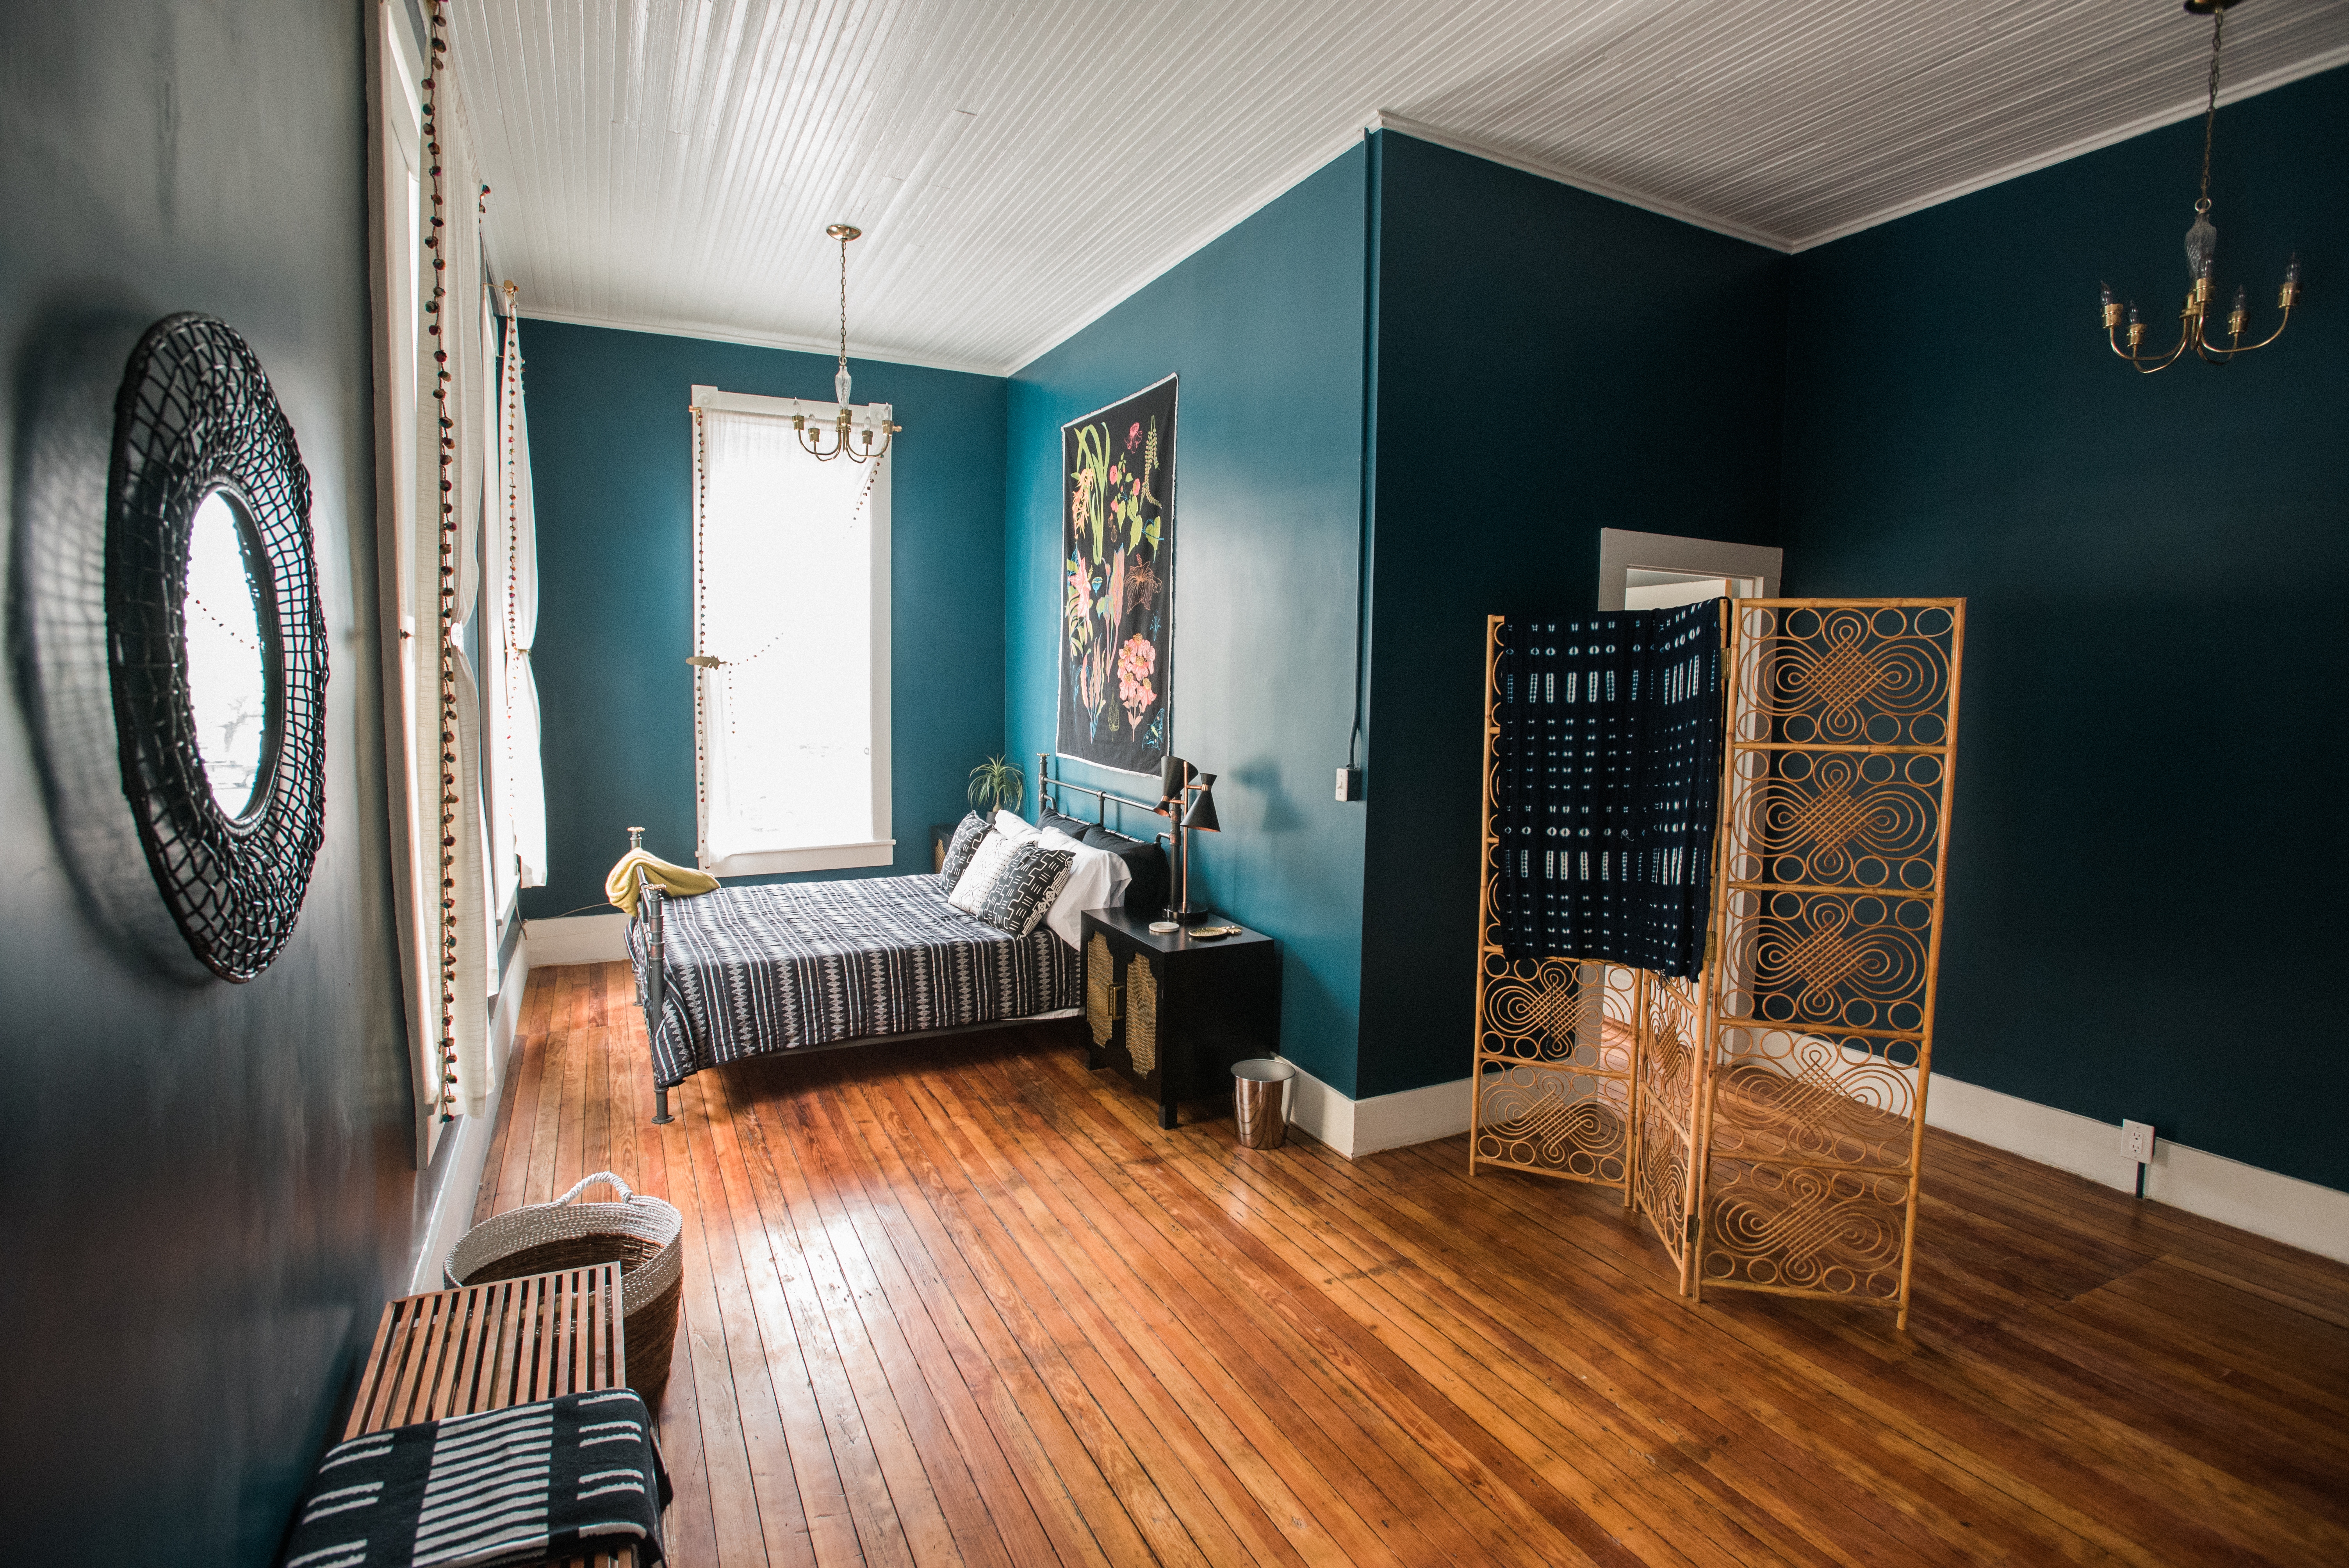 How To Set Up And Decorate Your Airbnb The Washington Post